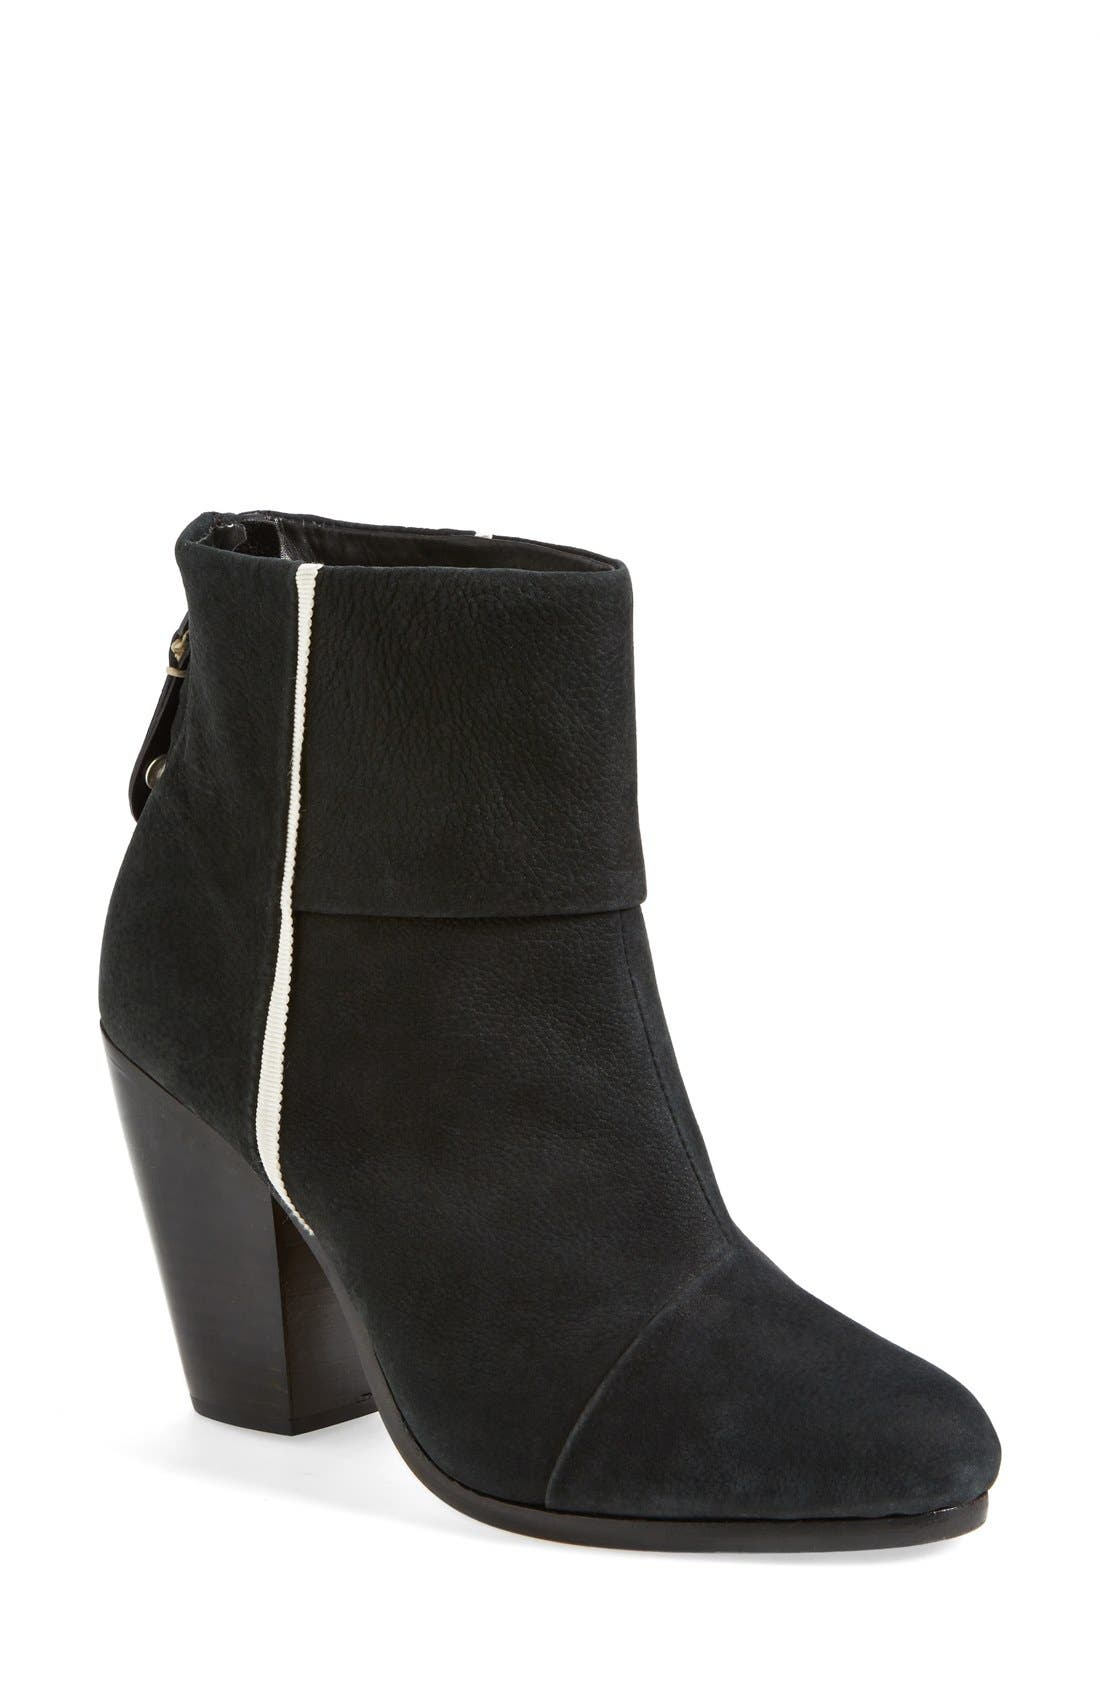 Alternate Image 1 Selected - rag & bone 'Classic Newbury' Boot